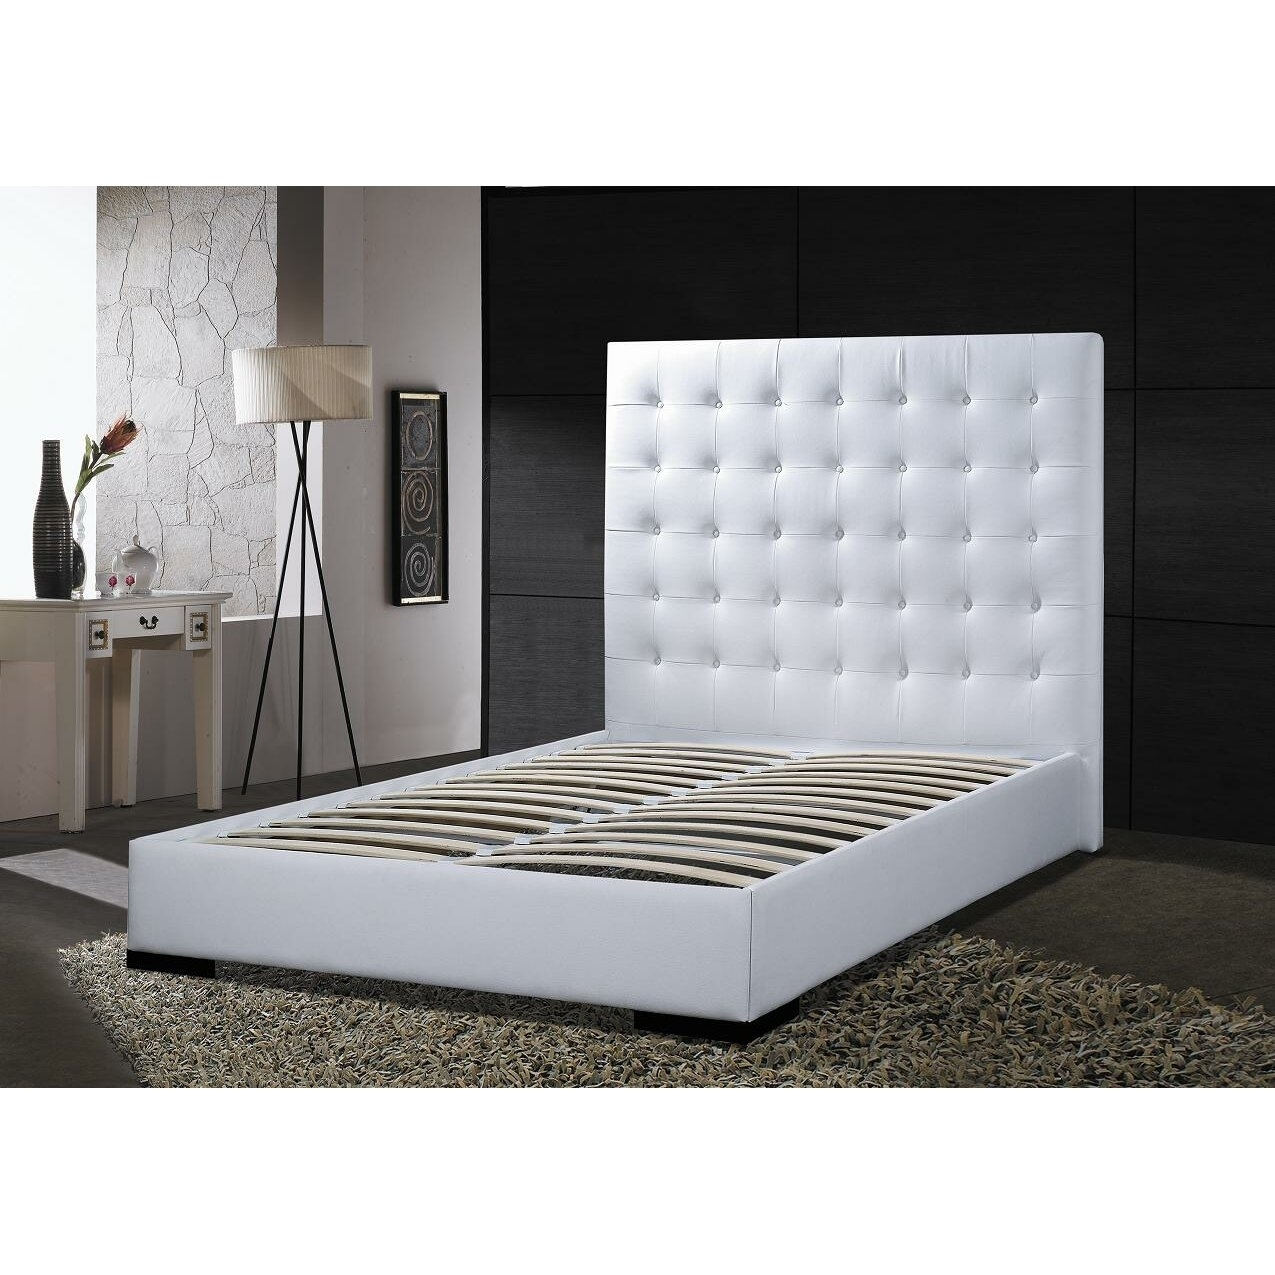 Picture of: White Leather Headboard King Size Ideas On Foter